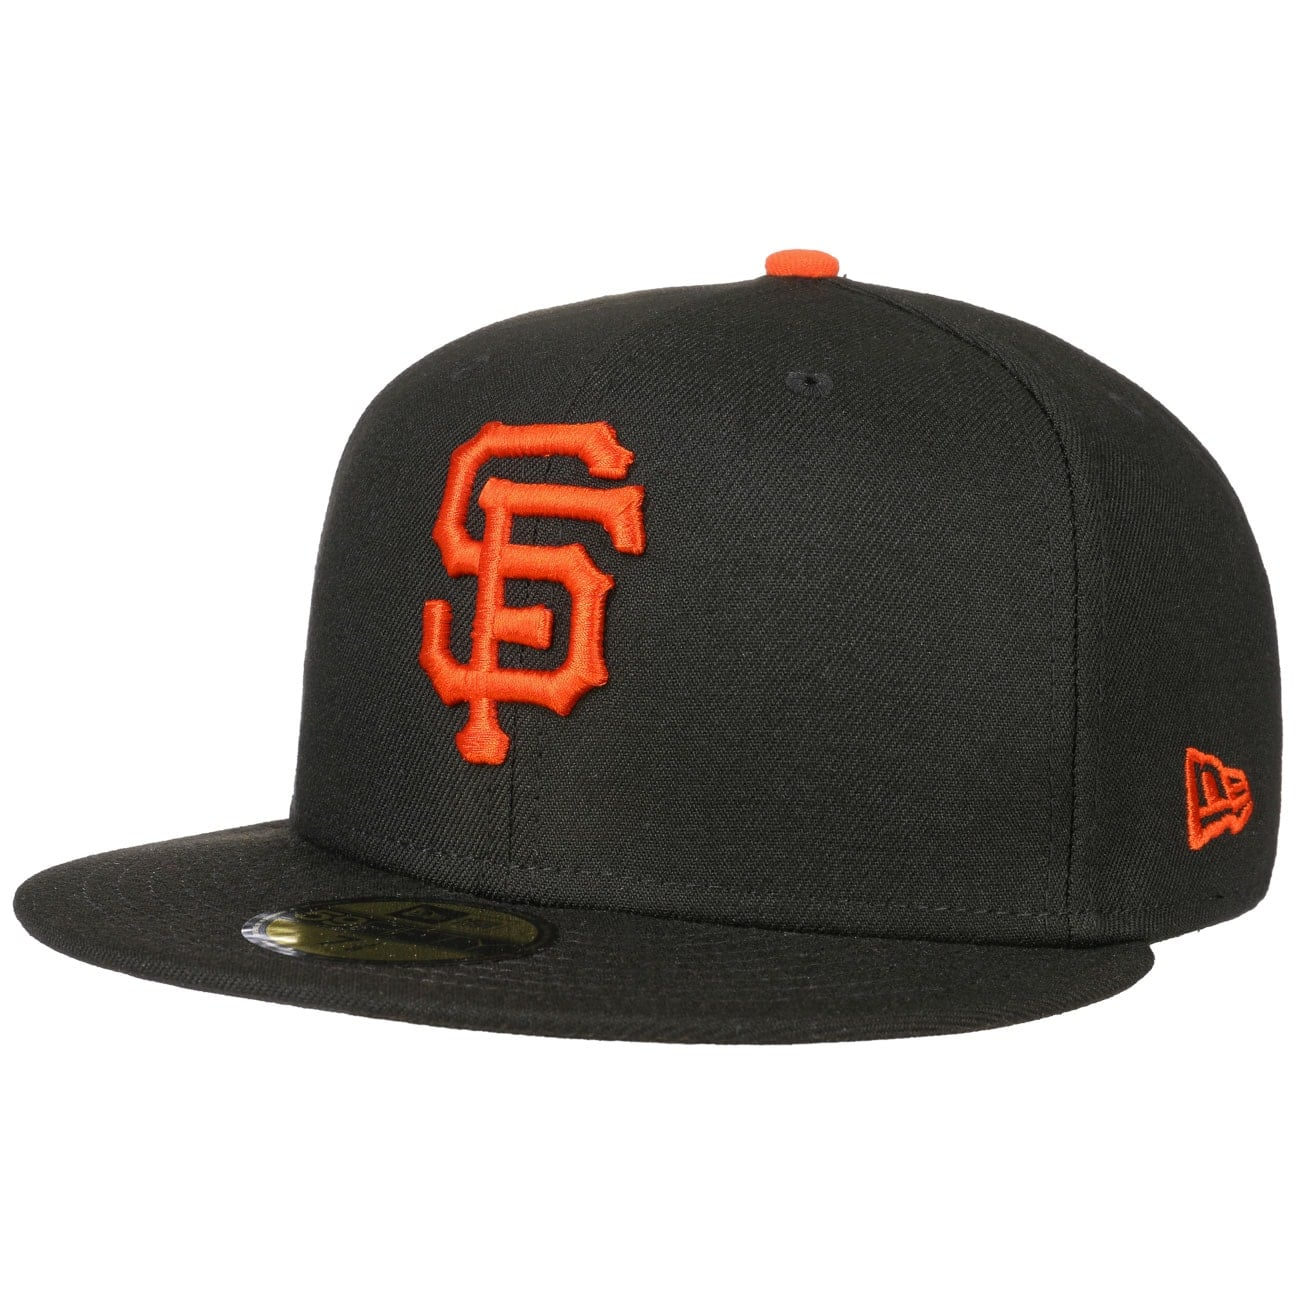 Casquette 59Fifty AC Perf Giants by New Era  baseball cap